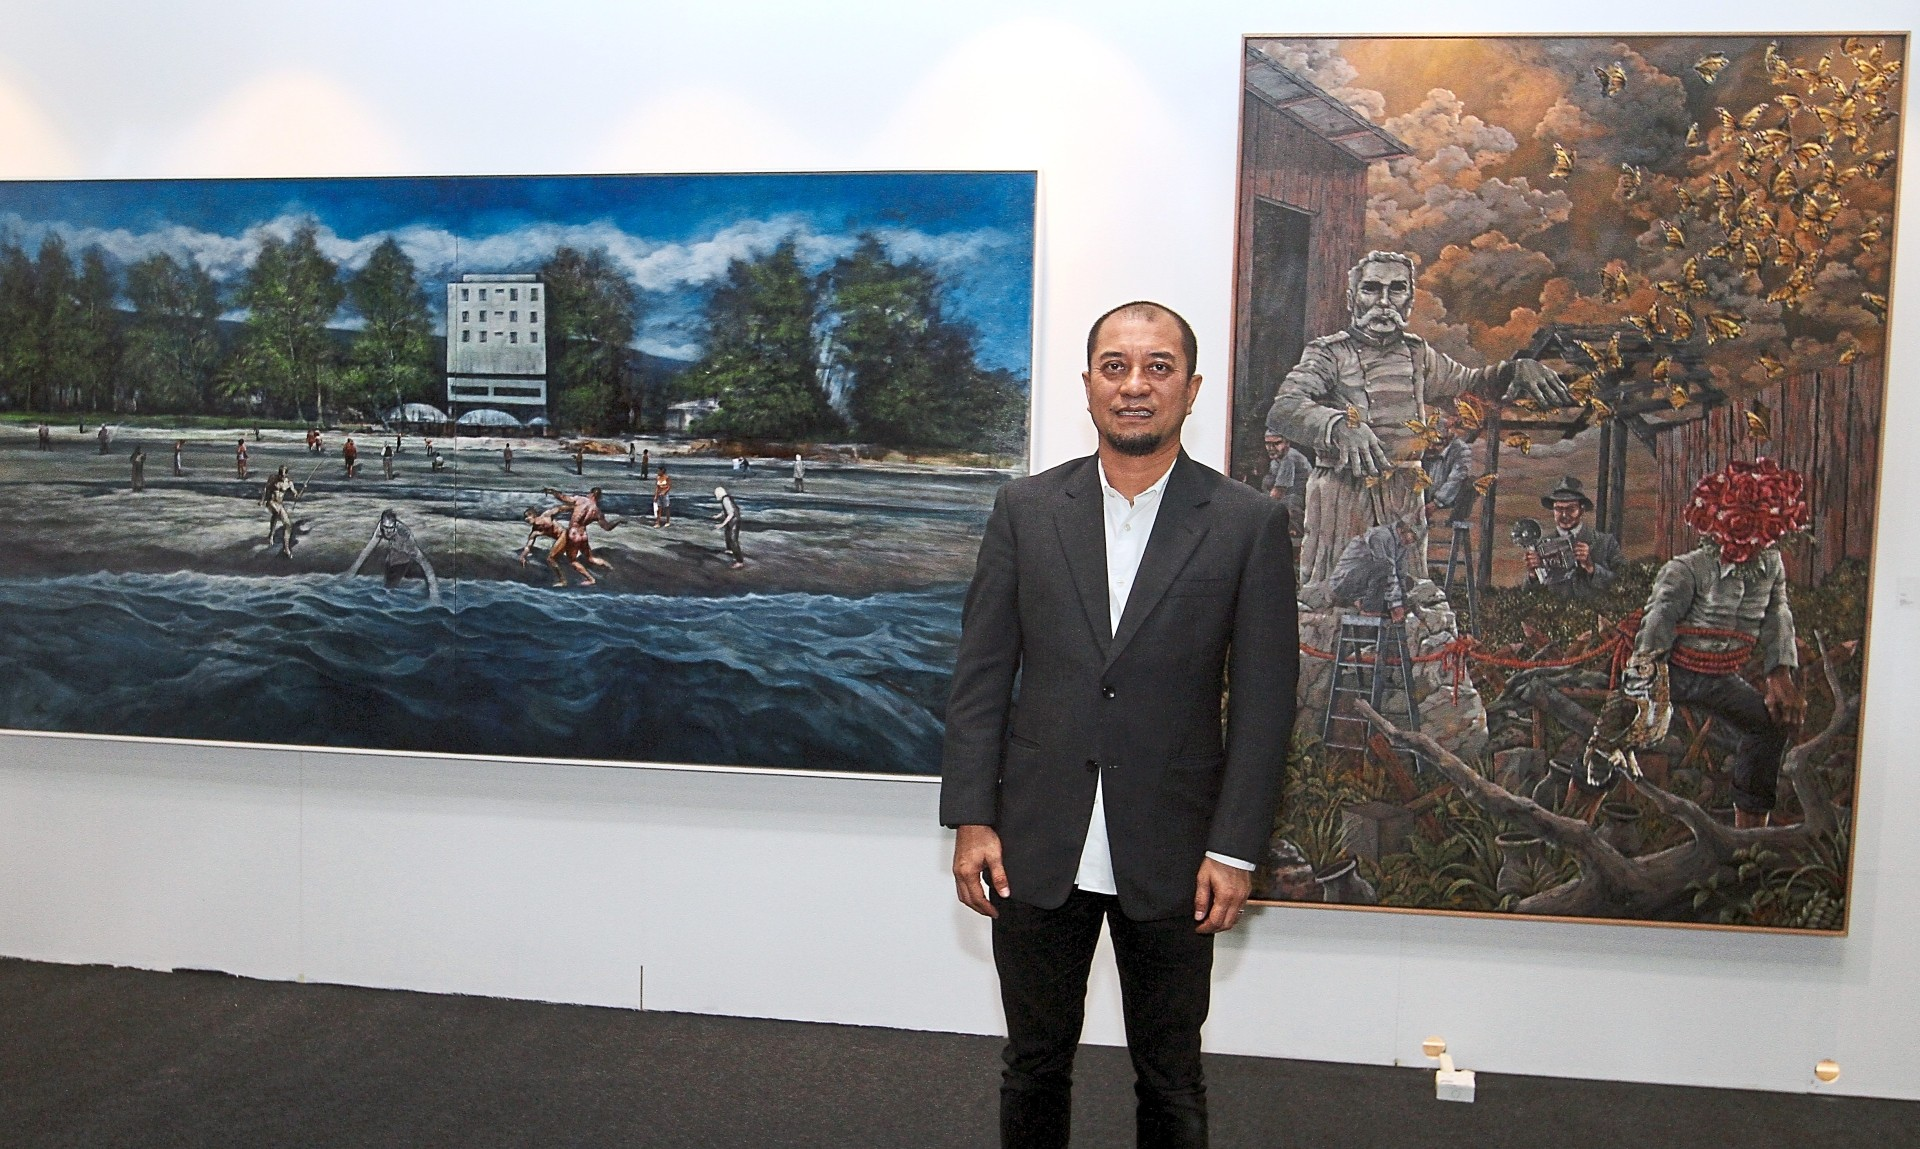 Nizam in front of two pieces by UiTM alumni during the Art Expo Malaysia 2019.